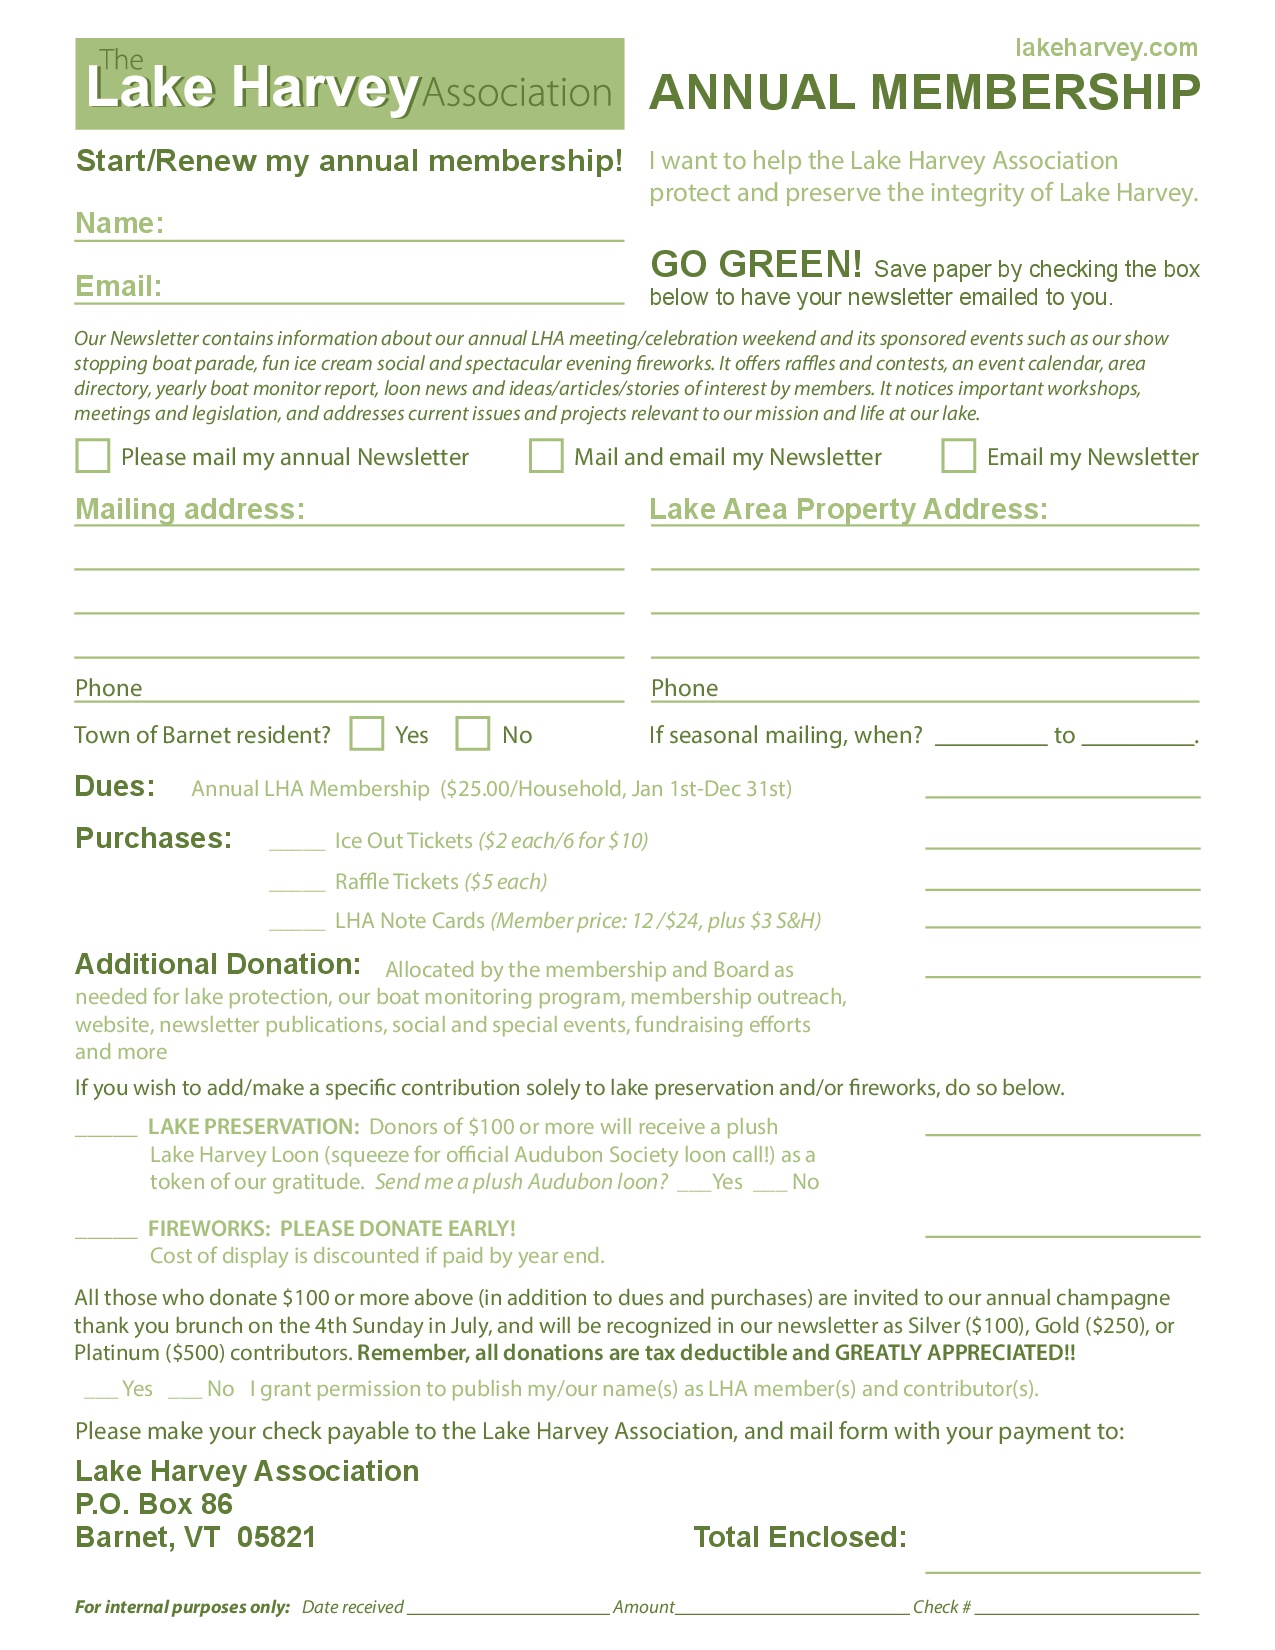 Lake Harvey Member Ship Form